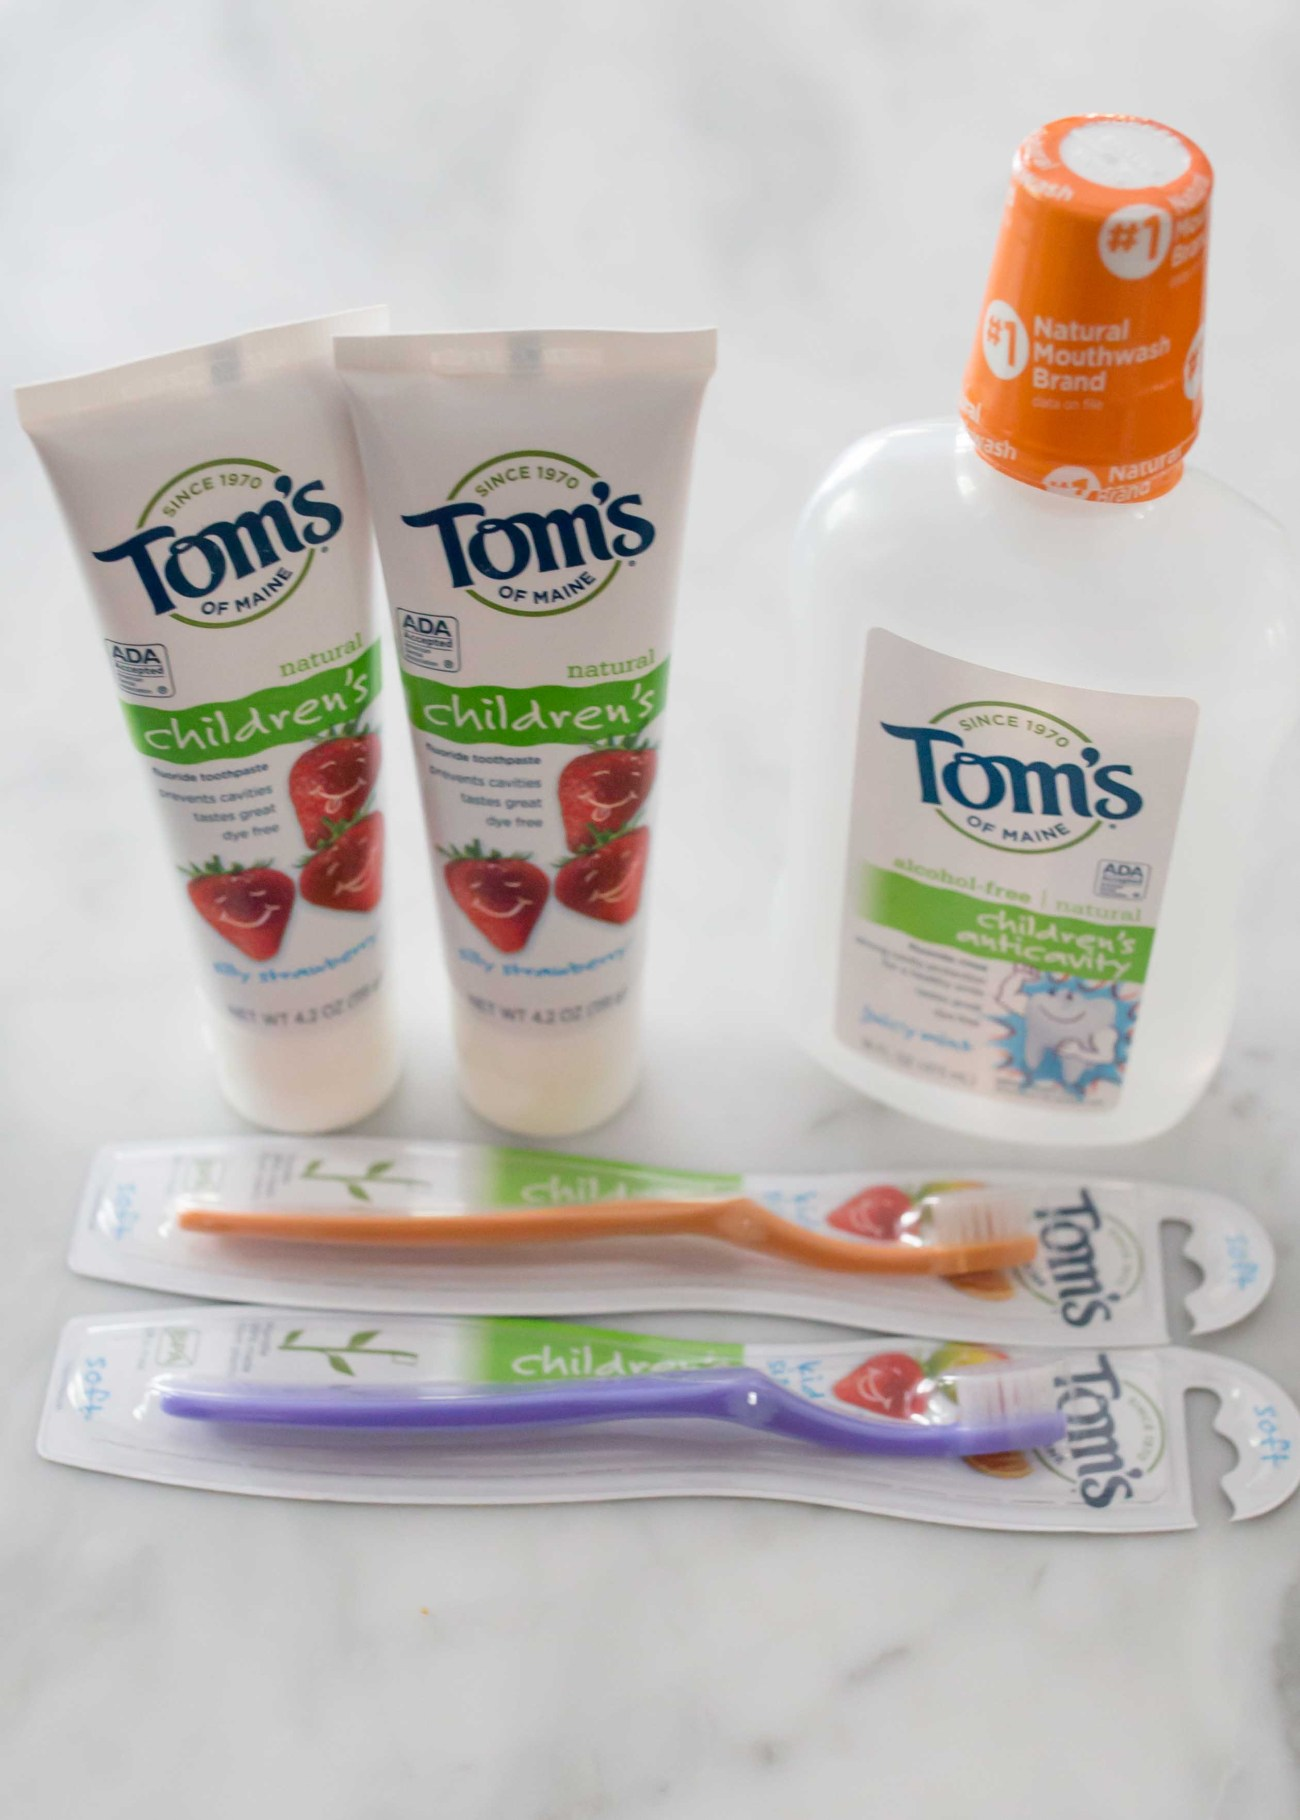 Tom's of maine dental hygiene products for kids